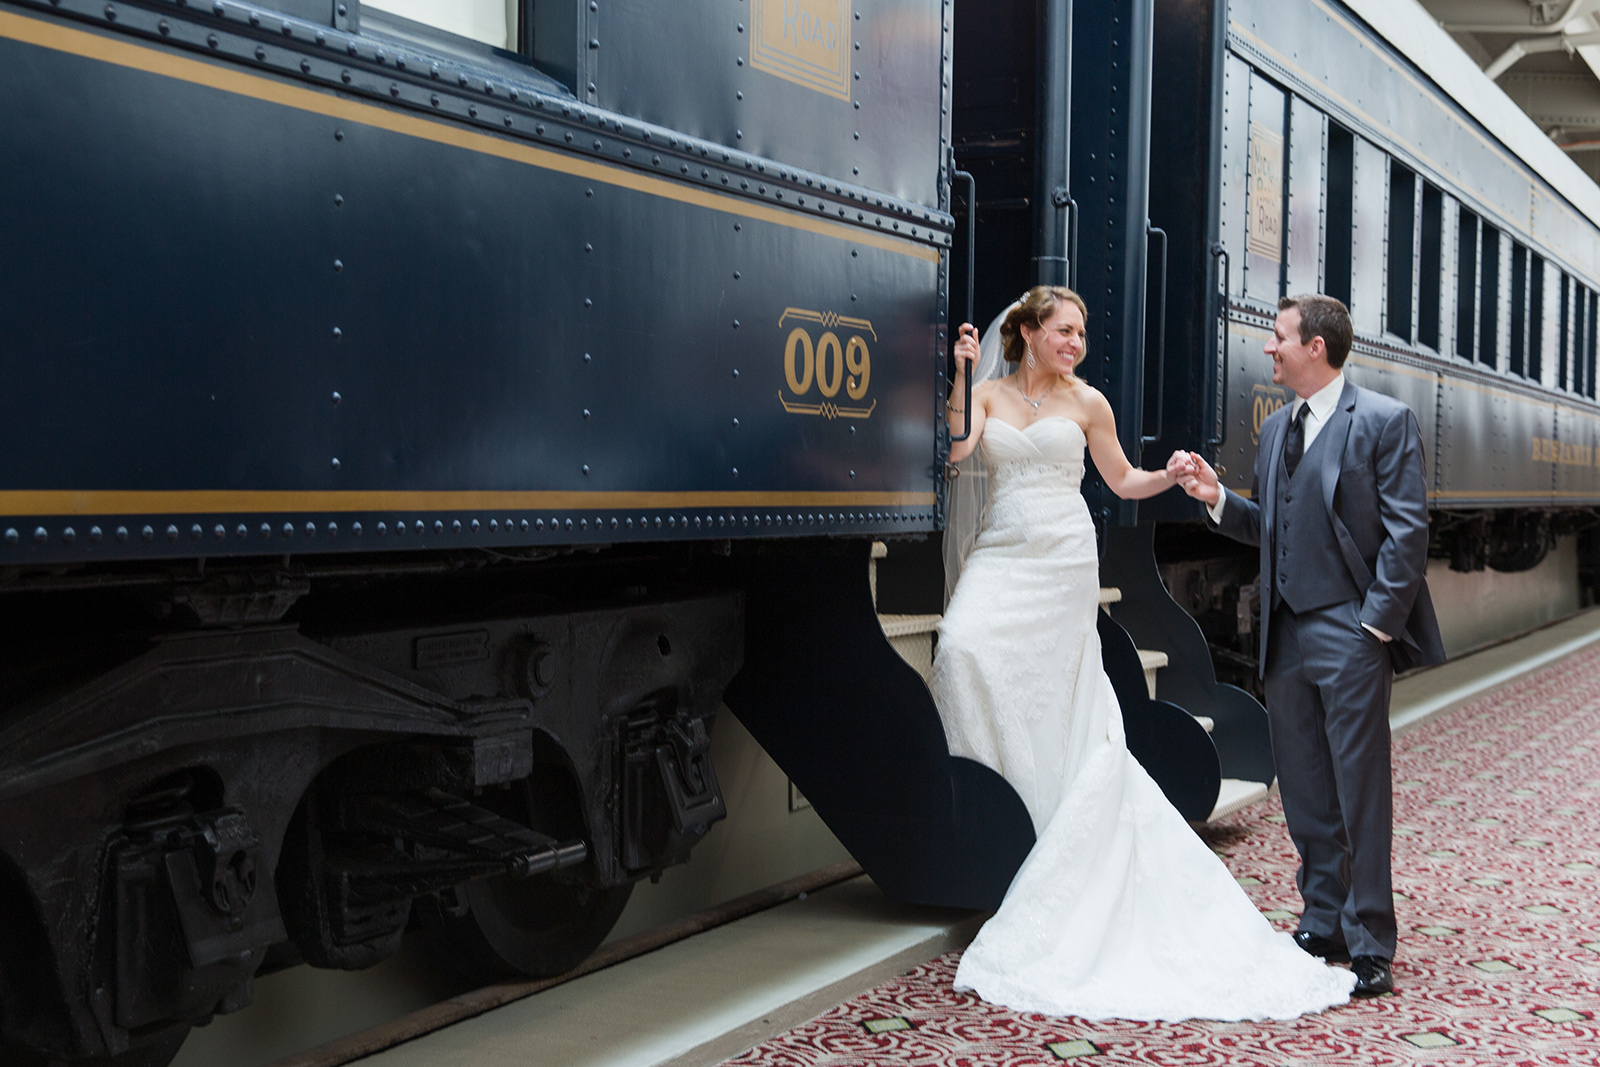 An Industrial Vintage Indianapolis Wedding - The Overwhelmed Bride Wedding Blog